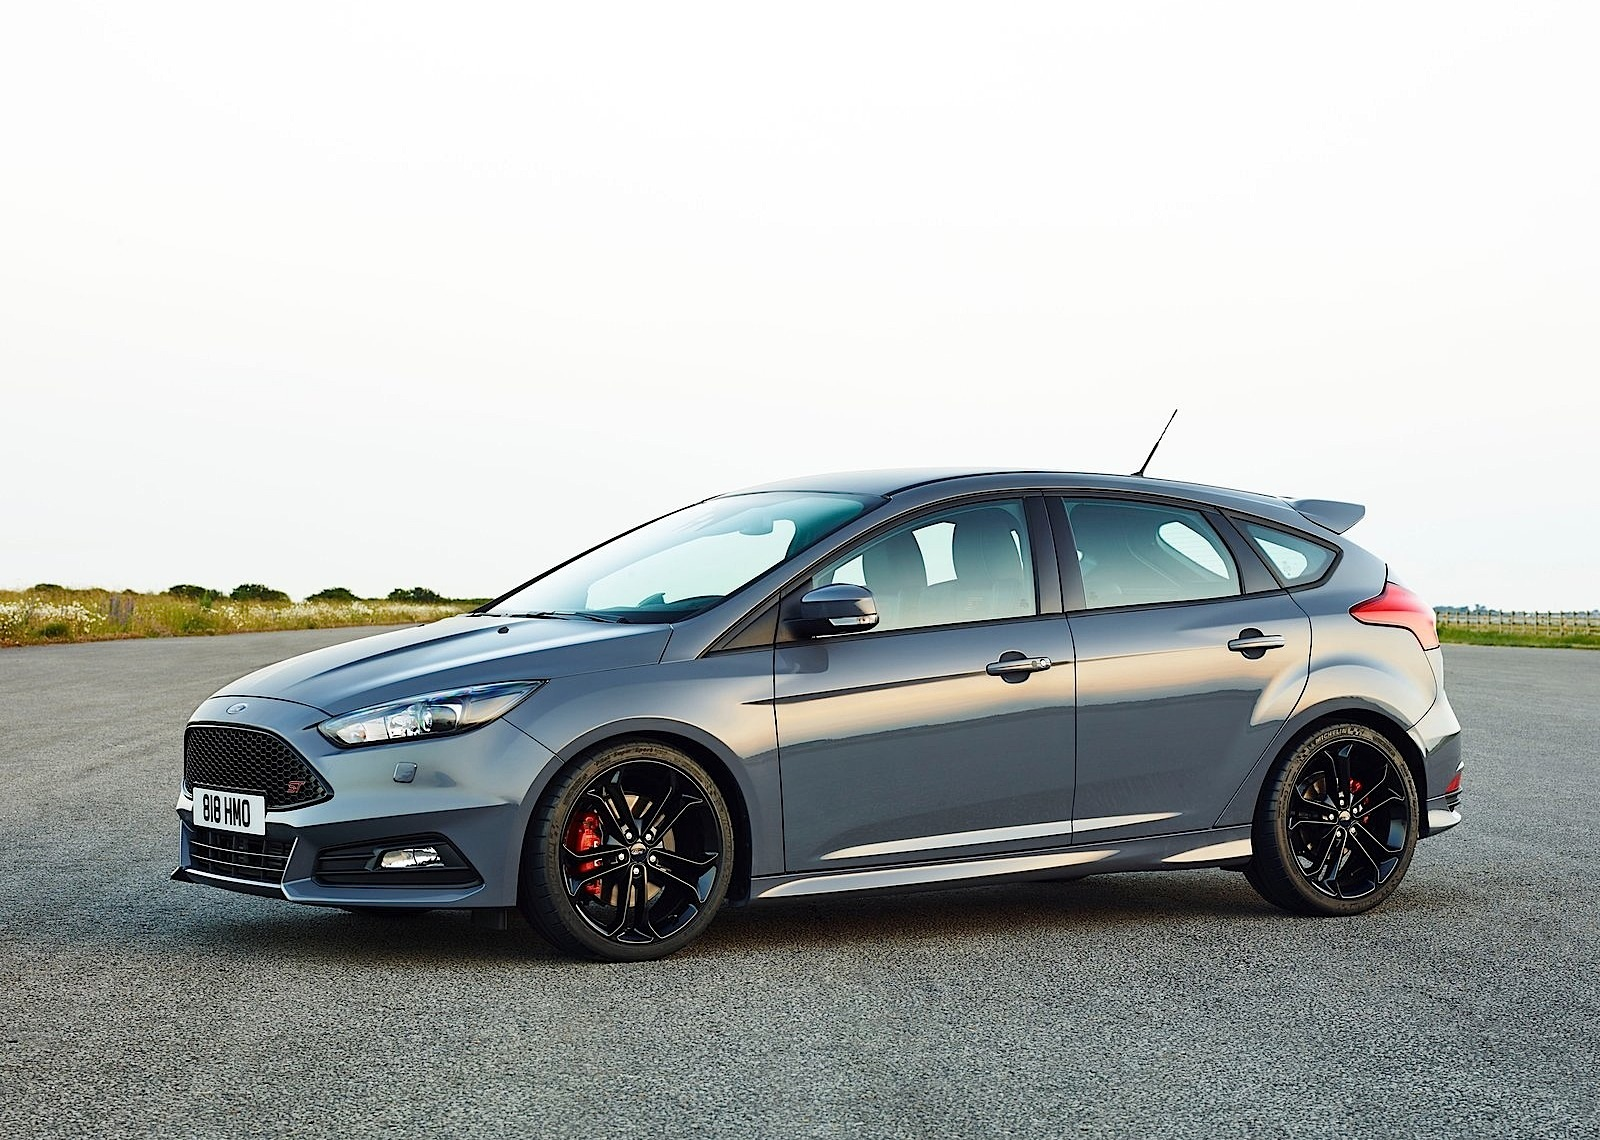 Best Looking Hatchbacks Ford Focus St 5 Doors Specs And Photos 2014 2015 2016